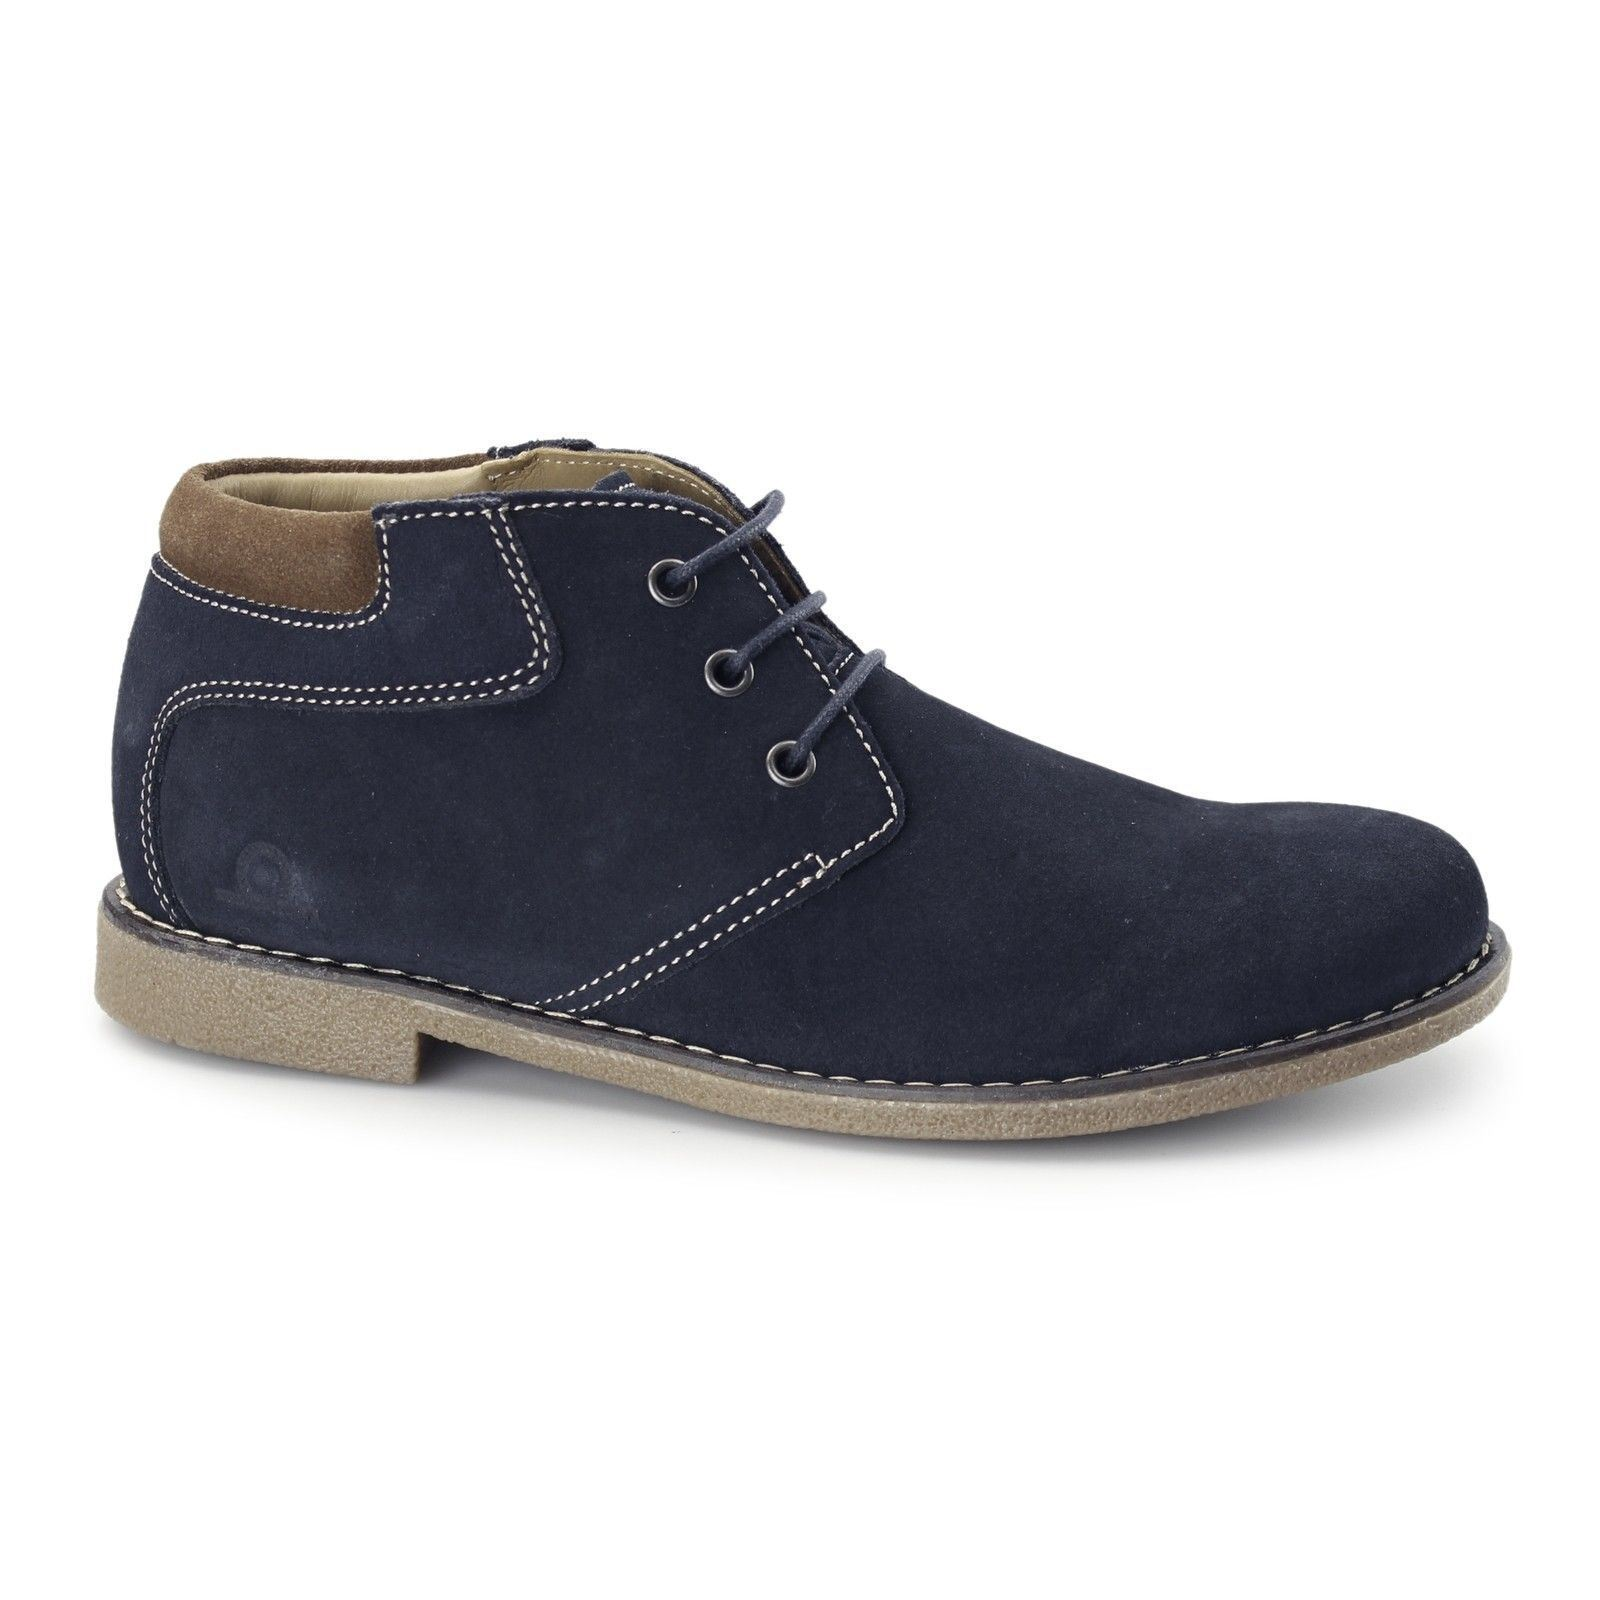 Chatham Tor Navy Suede Desert Boots In Size UK7 to UK15